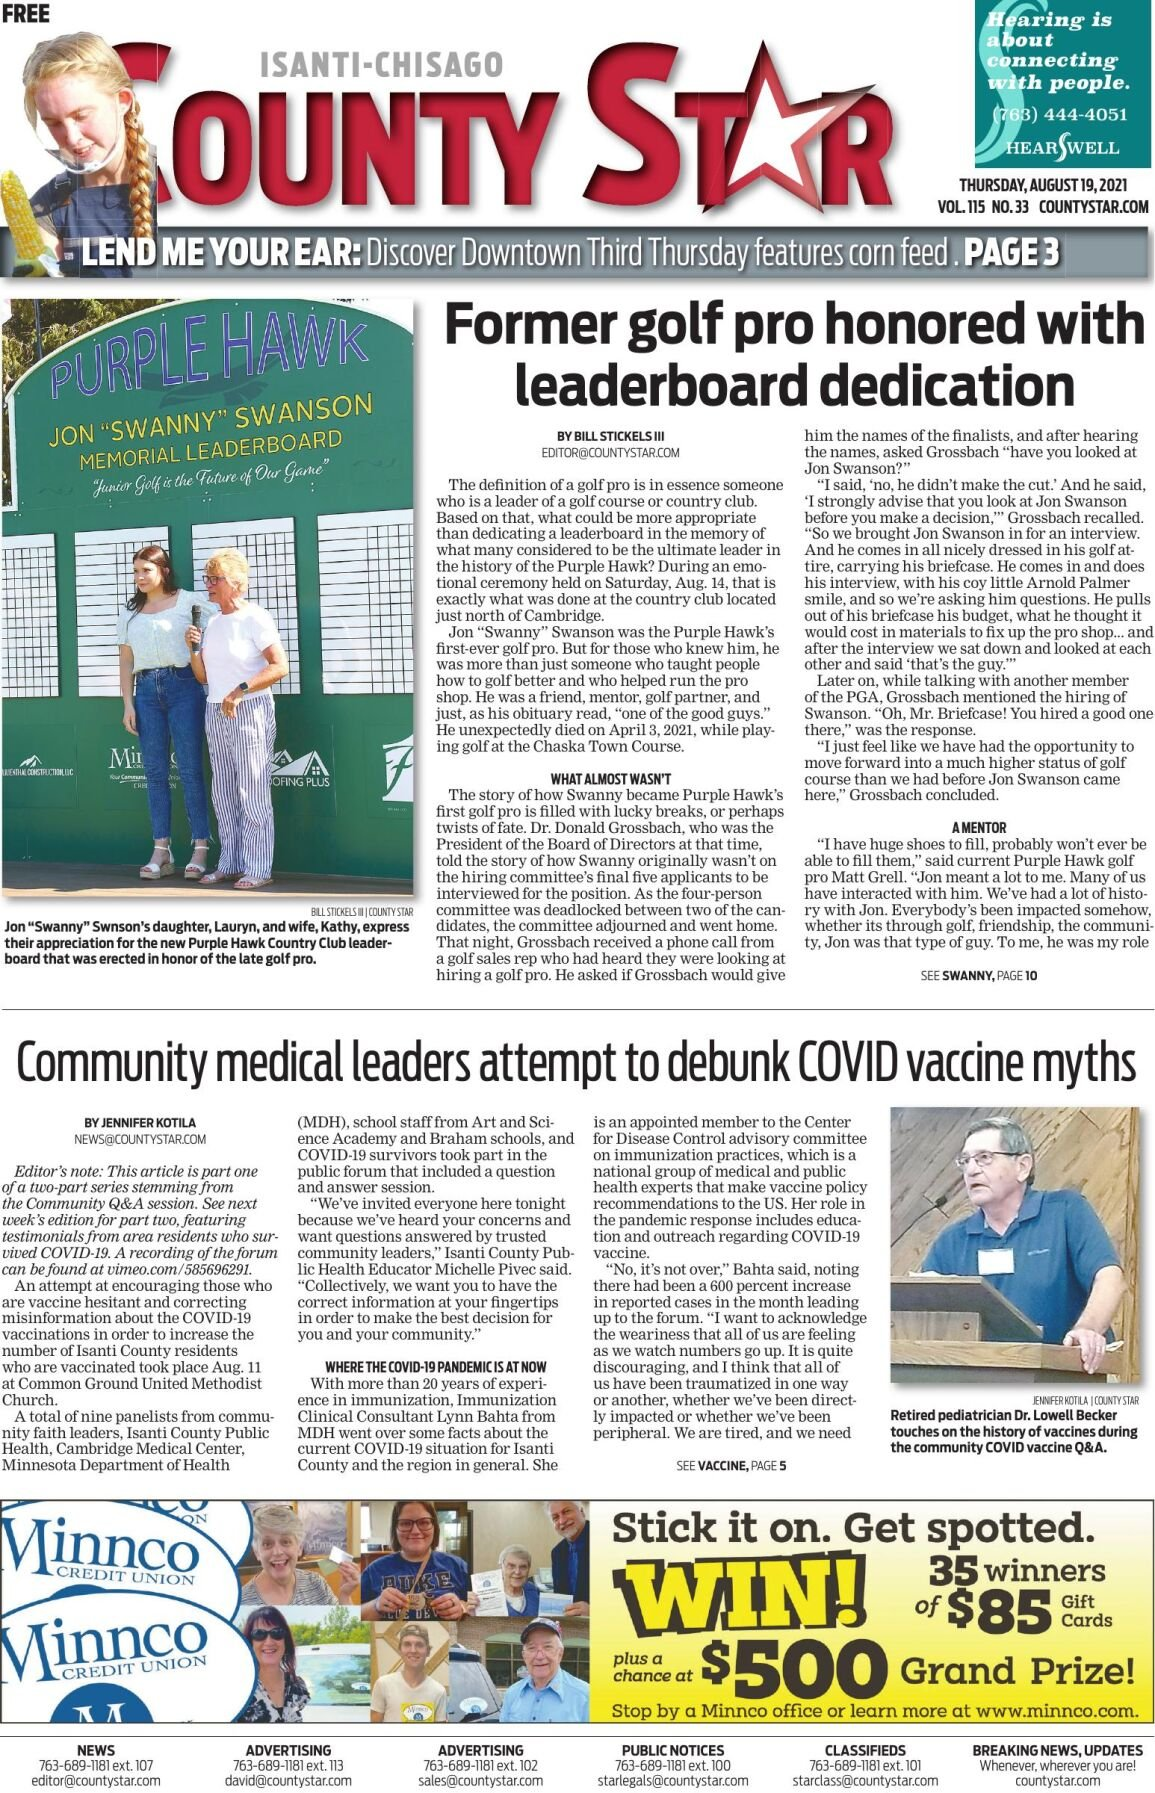 Isanti-Chisago County Star August 19, 2021 e-edition